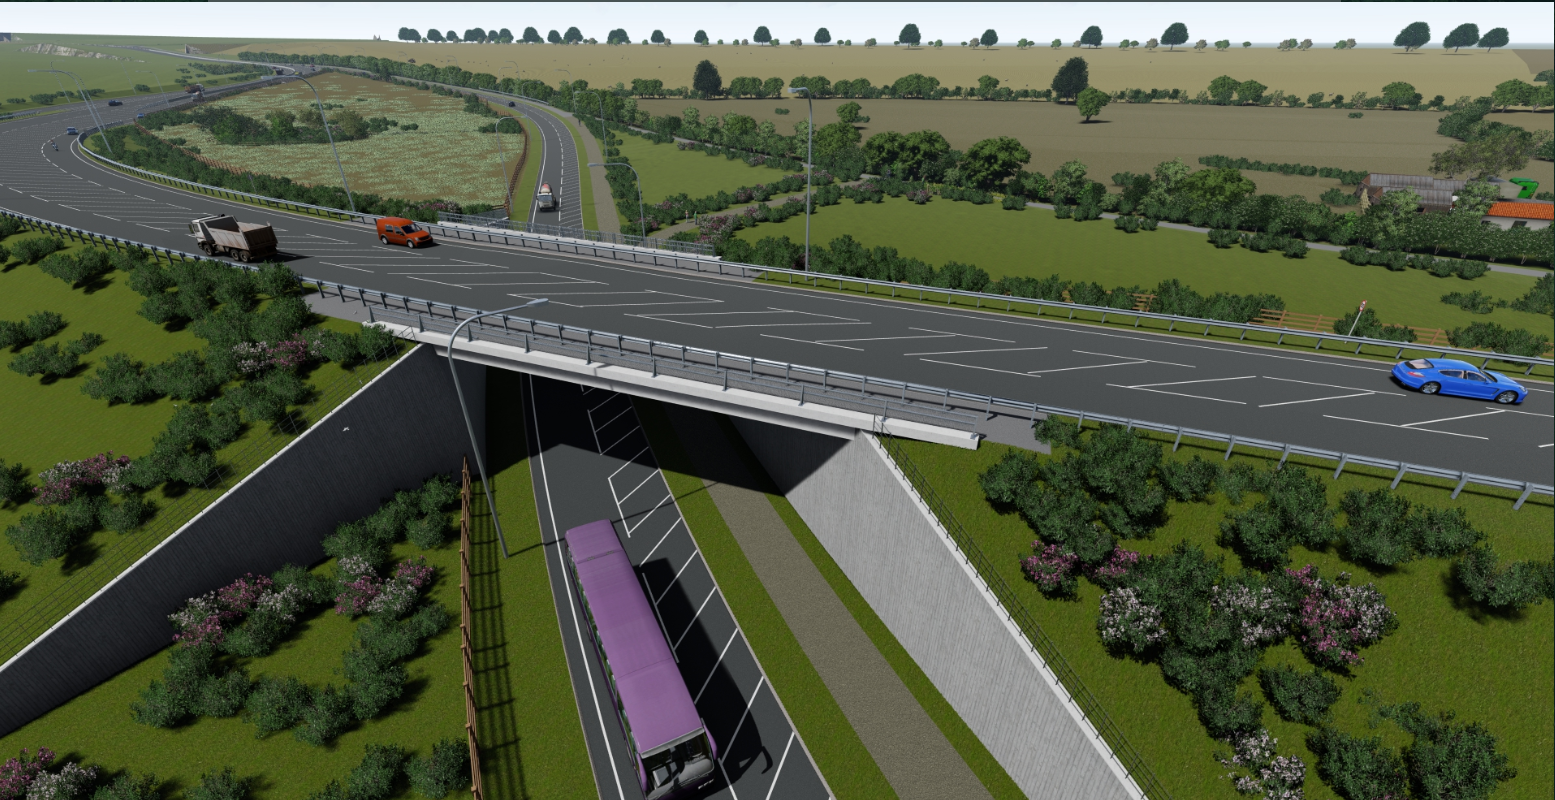 View of the new A164 bridge passing over the A1079